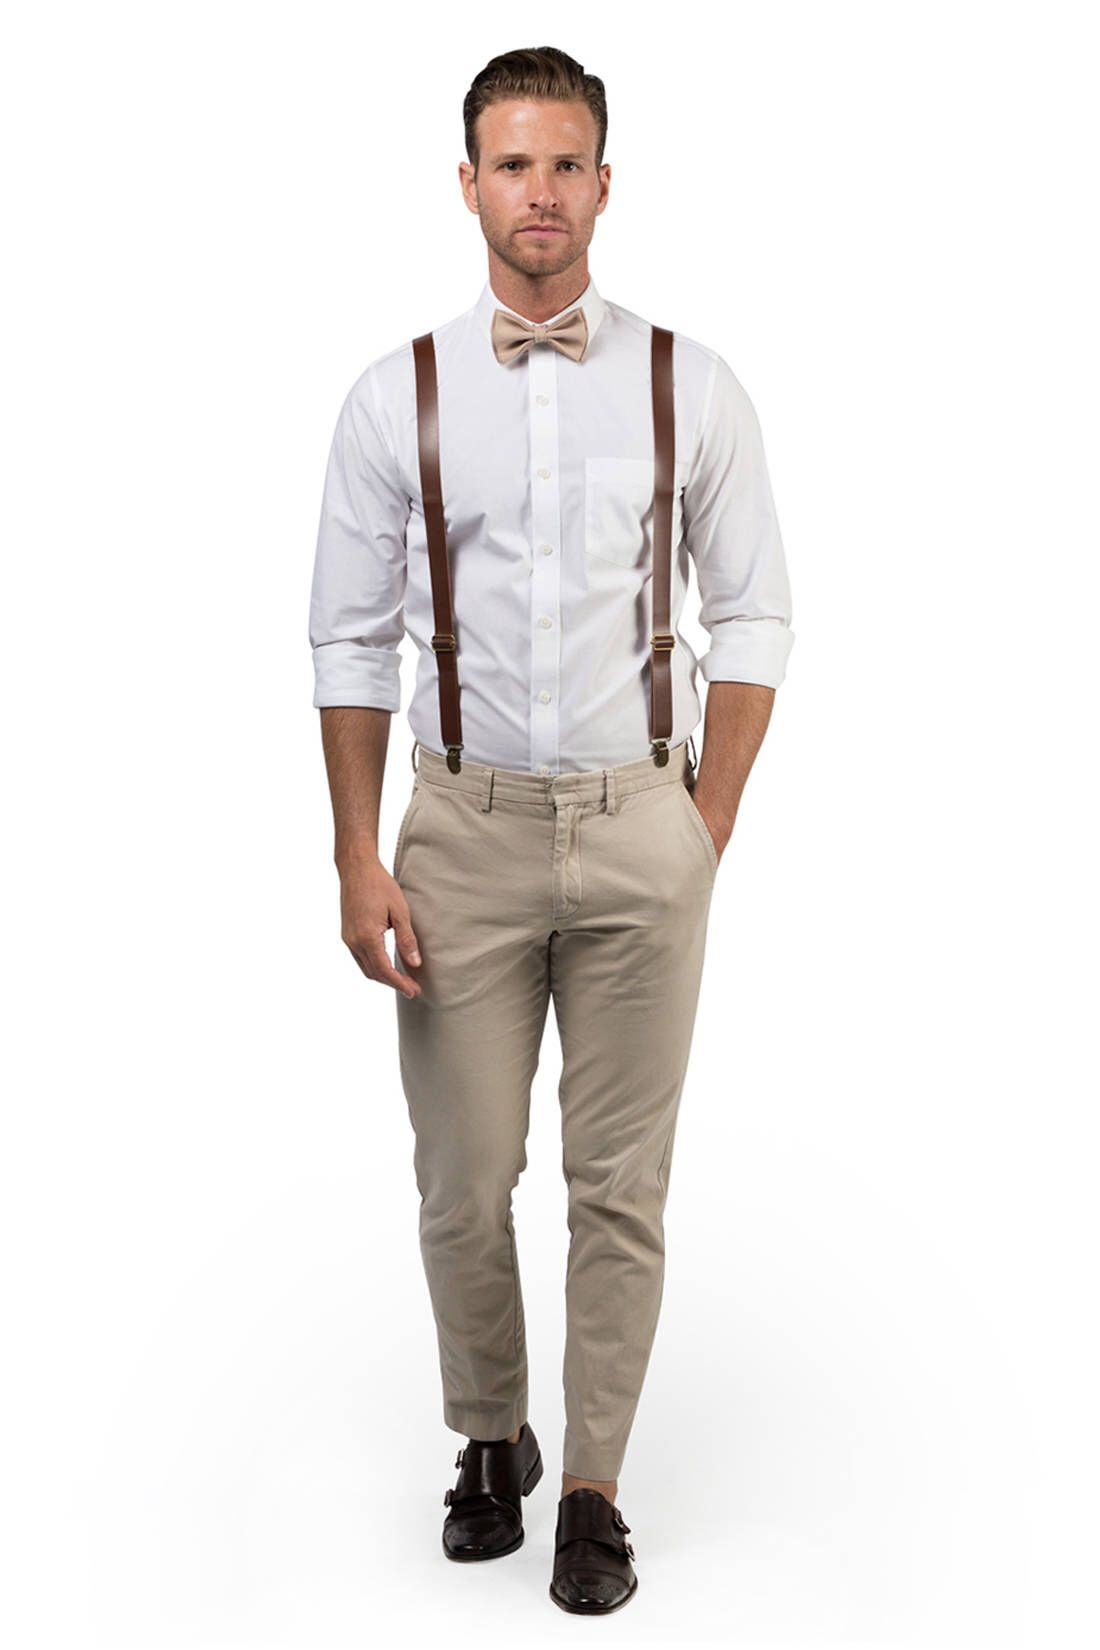 435959534cfd Brown Leather Suspenders & Beige Bow Tie -- Ring Bearer Outfit -- Bow